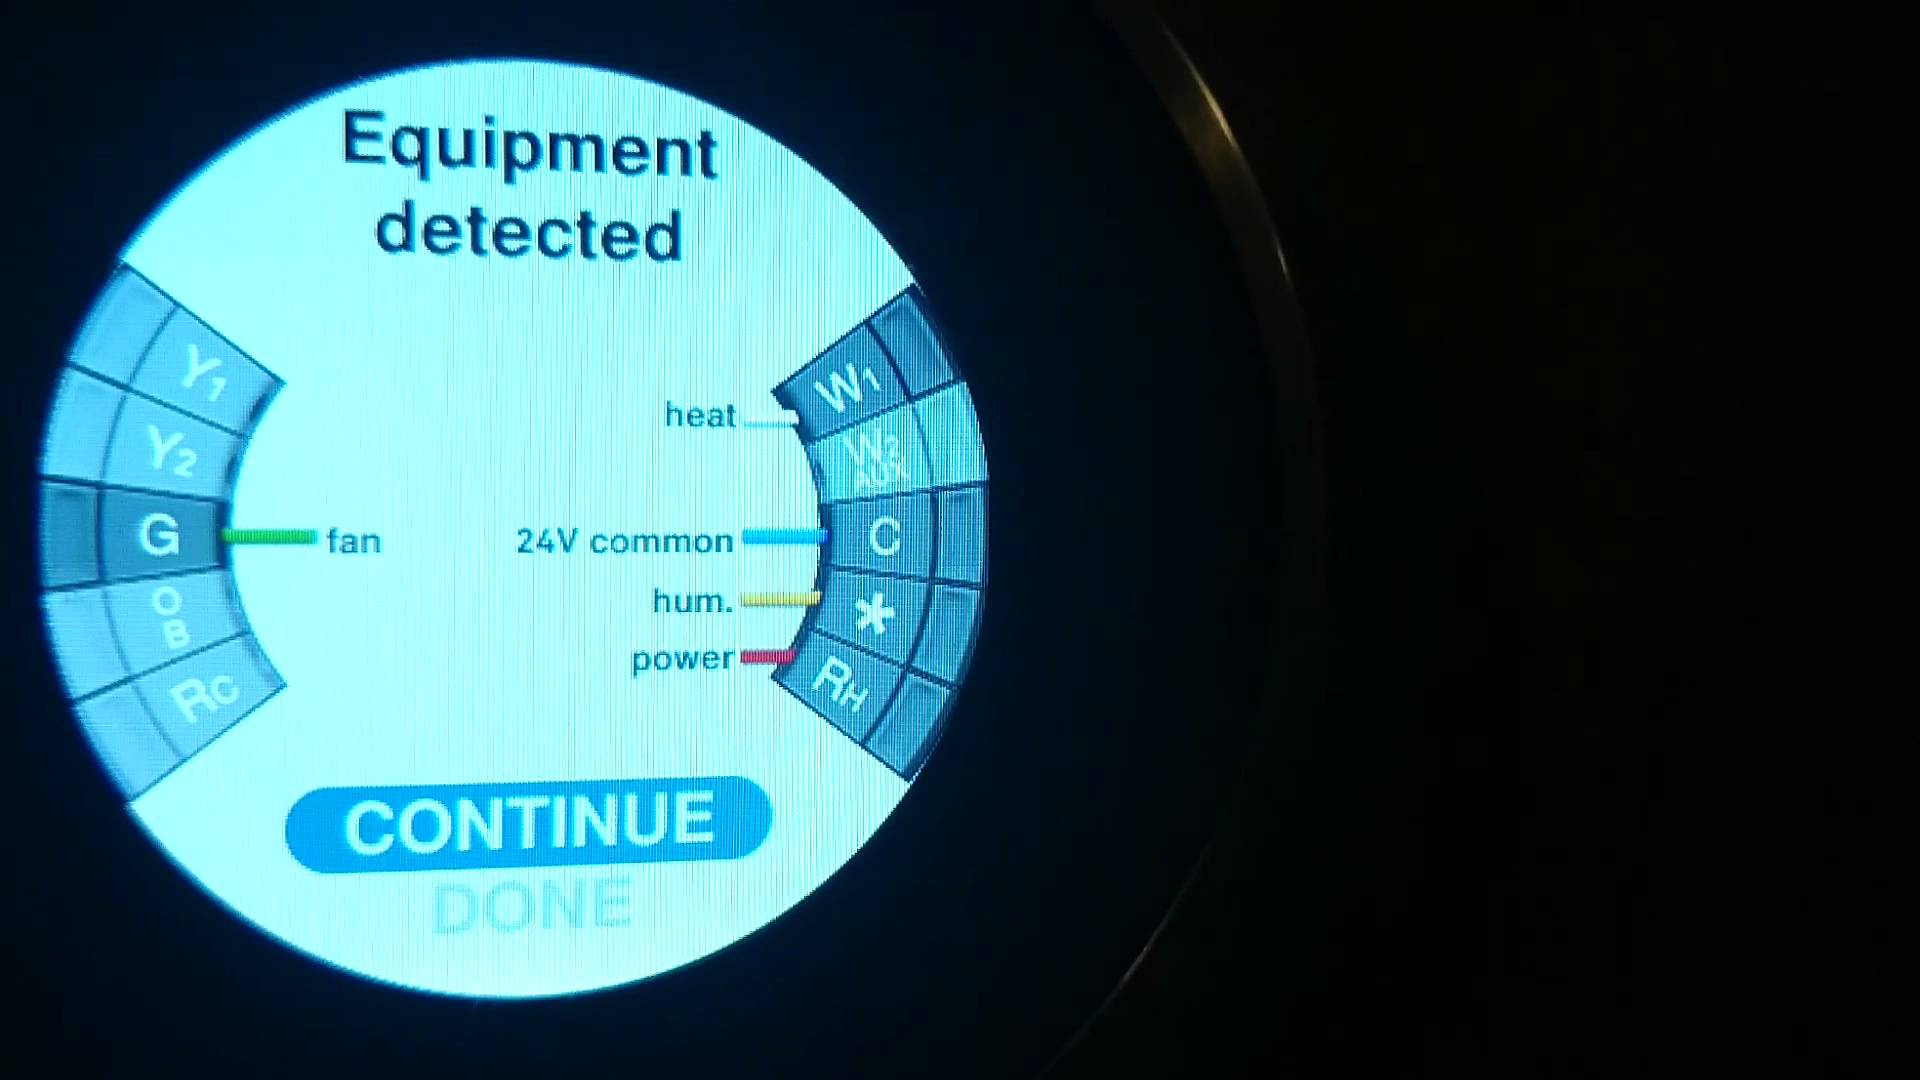 Wiring Diagram For Nest Thermostat With Humidifier - Wiring Diagrams - Nest Wiring Diagram Honeywell